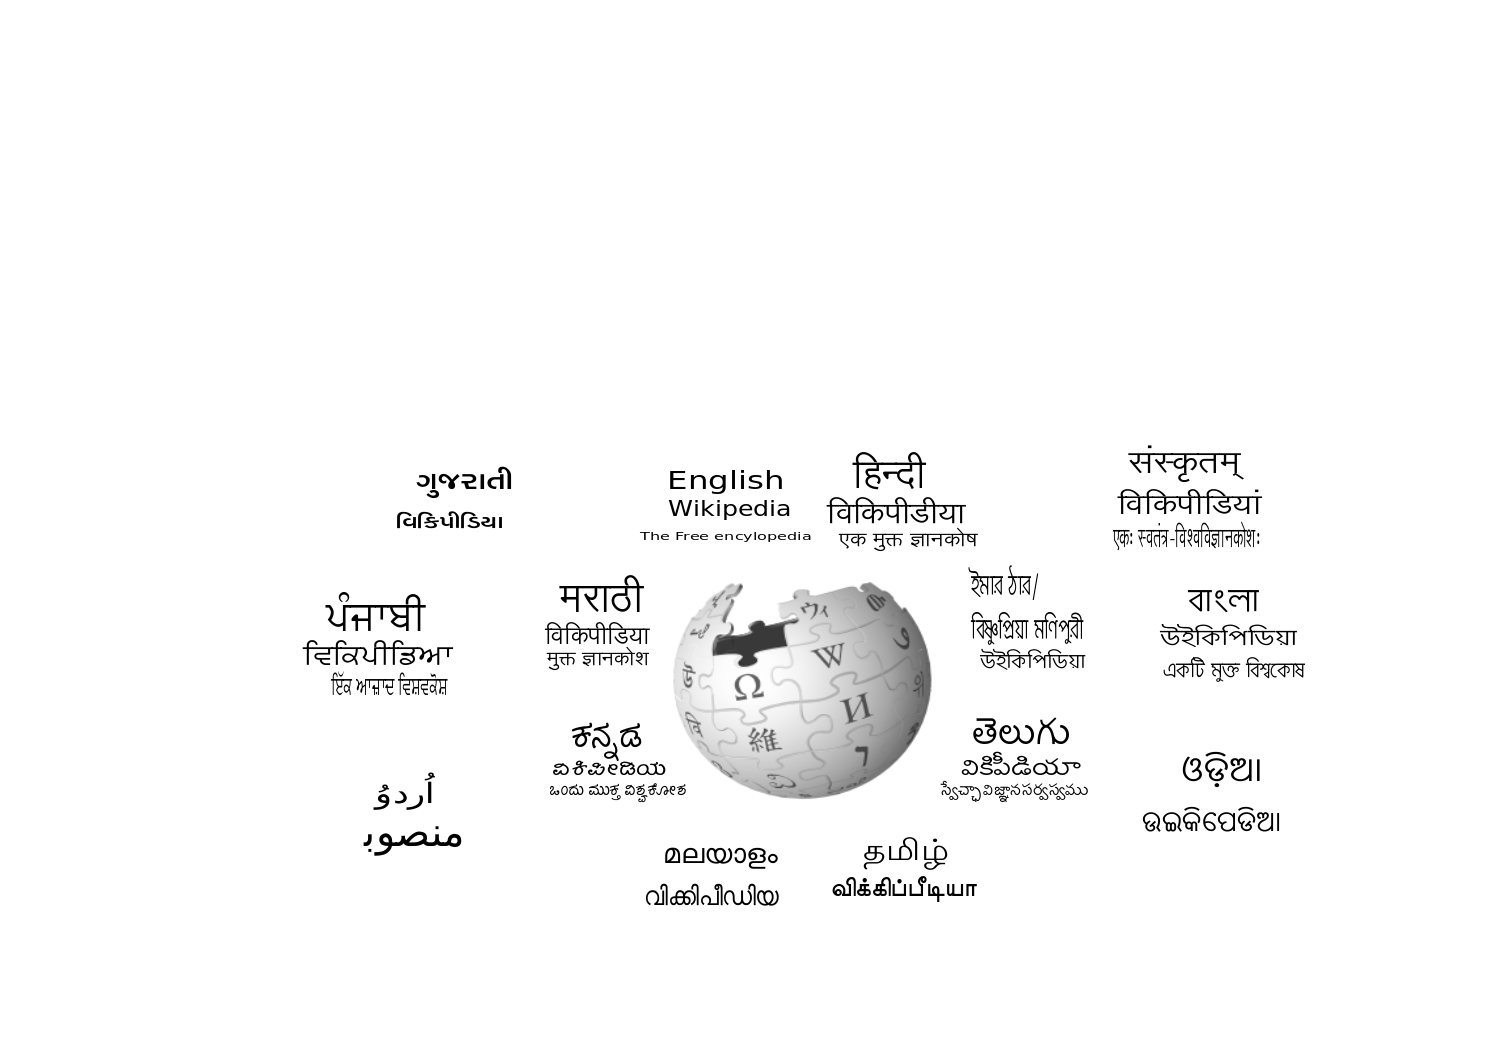 filewikipedia in indian languagespng